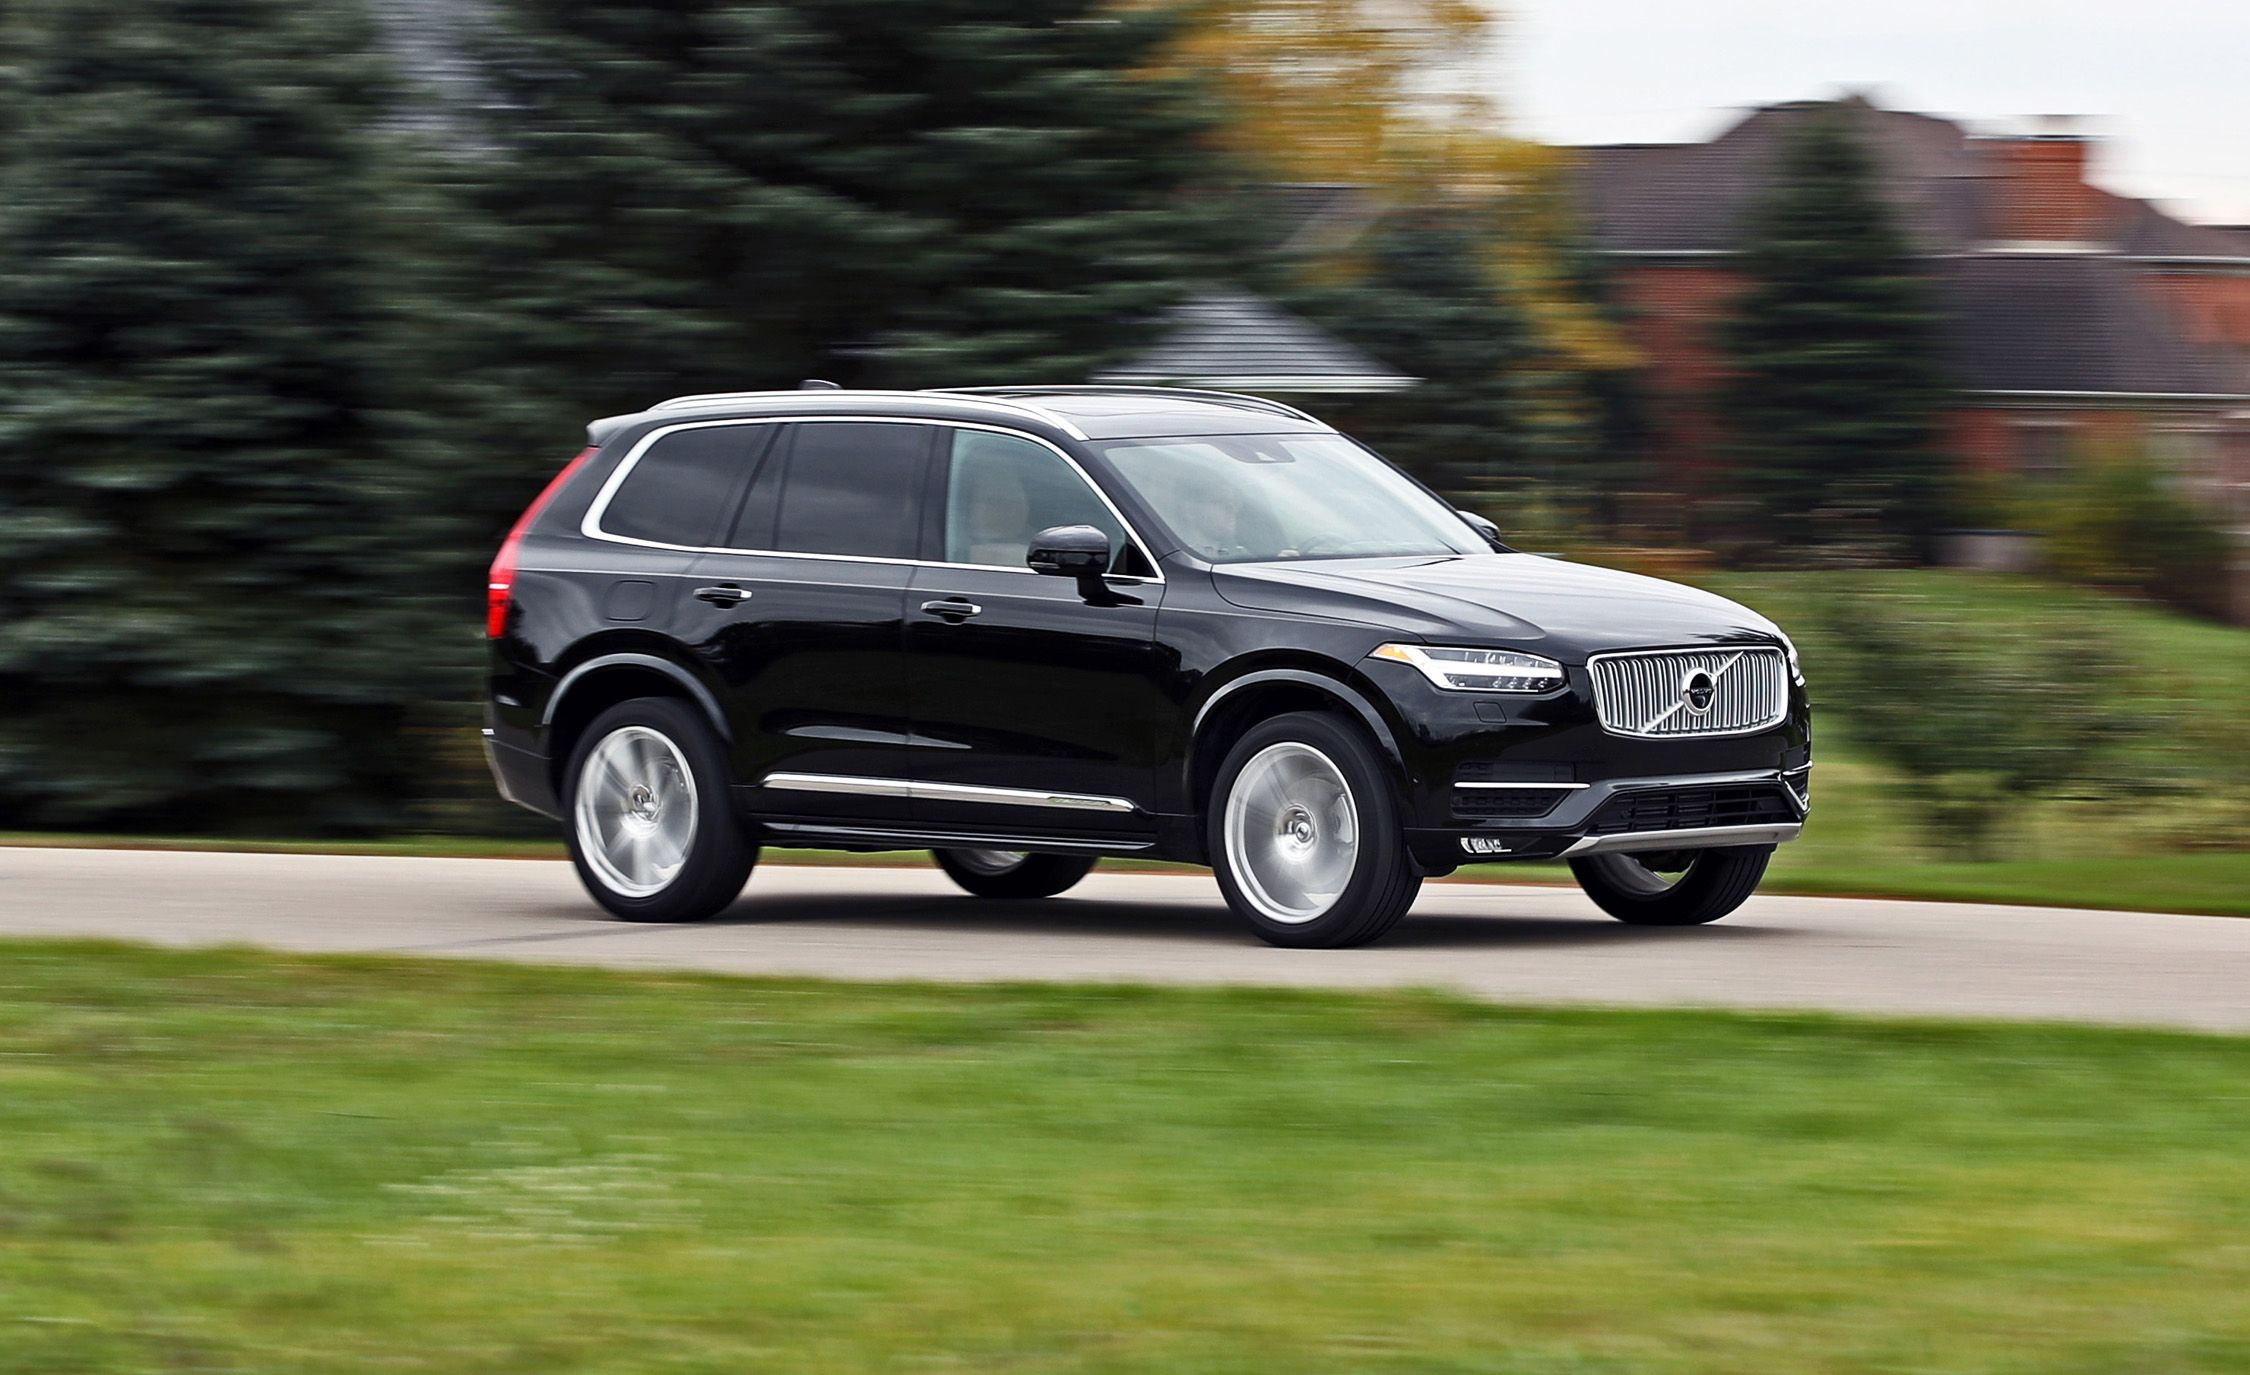 2019 Volvo Xc90 Reviews Volvo Xc90 Price Photos And Specs Car